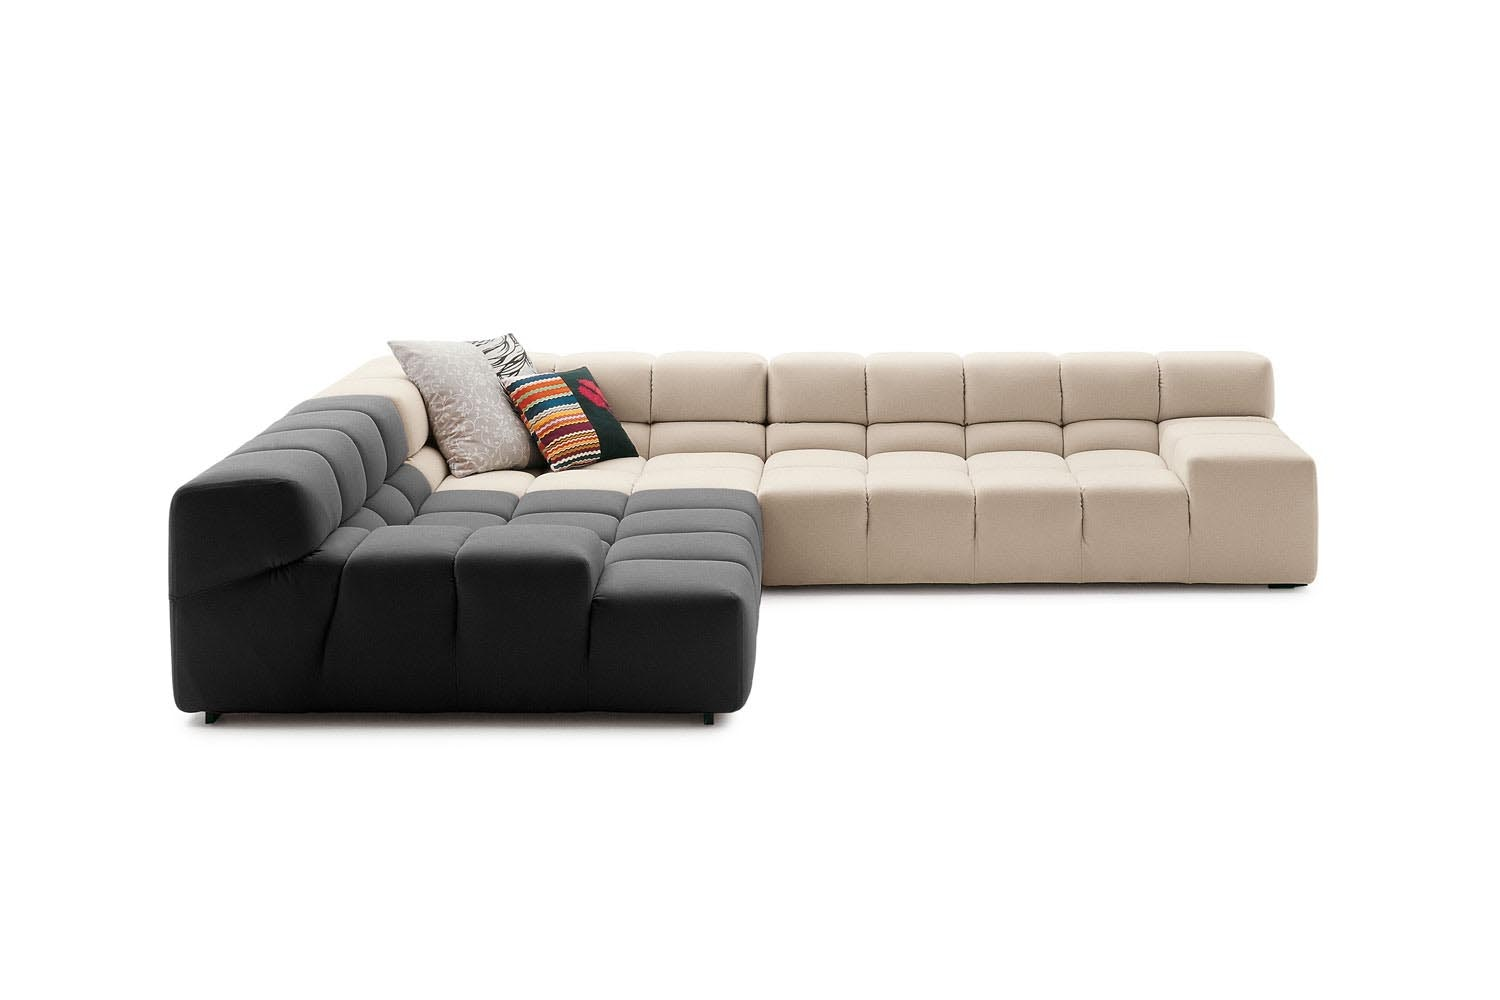 Tufty-Time Sofa by Patricia Urquiola for B&B Italia